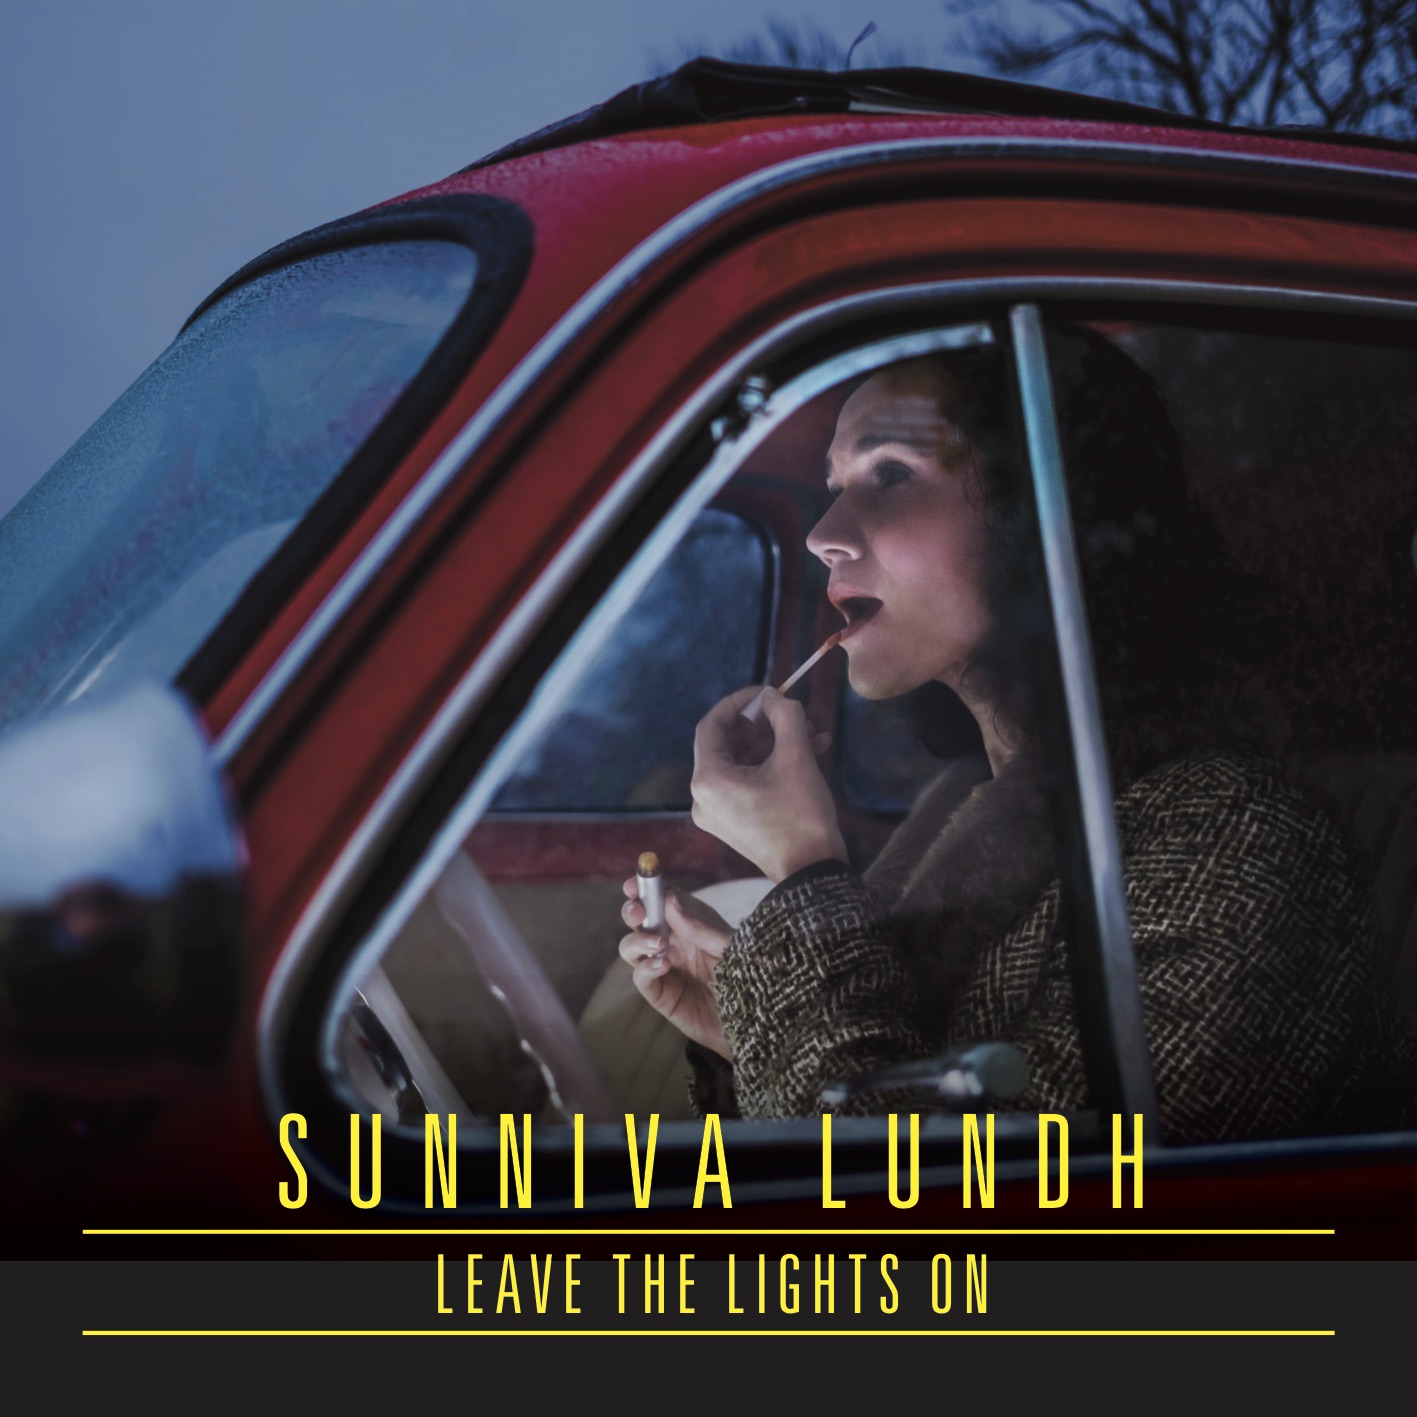 sunniva lundh - leave the lights on